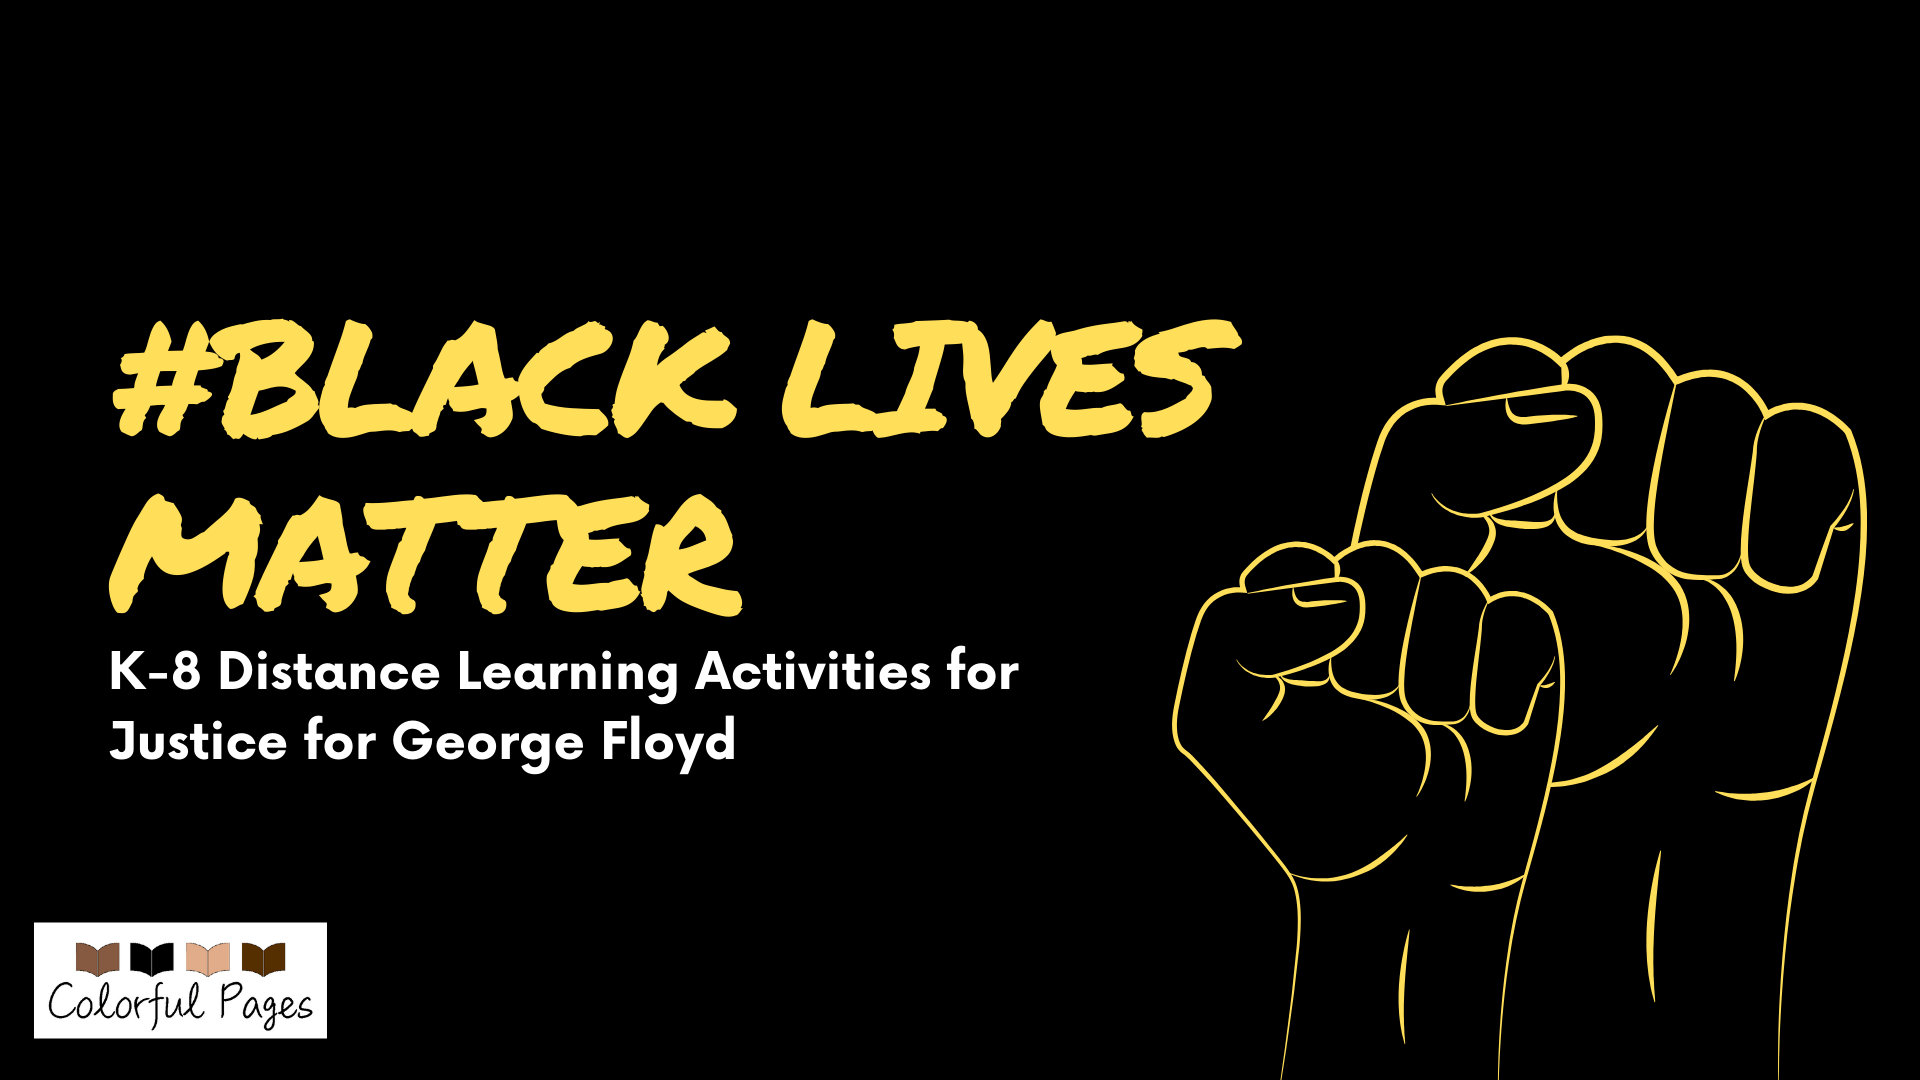 hight resolution of BlackLivesMatter: K-8 Distance Learning Activities for Justice for George  Floyd – Colorful Pages